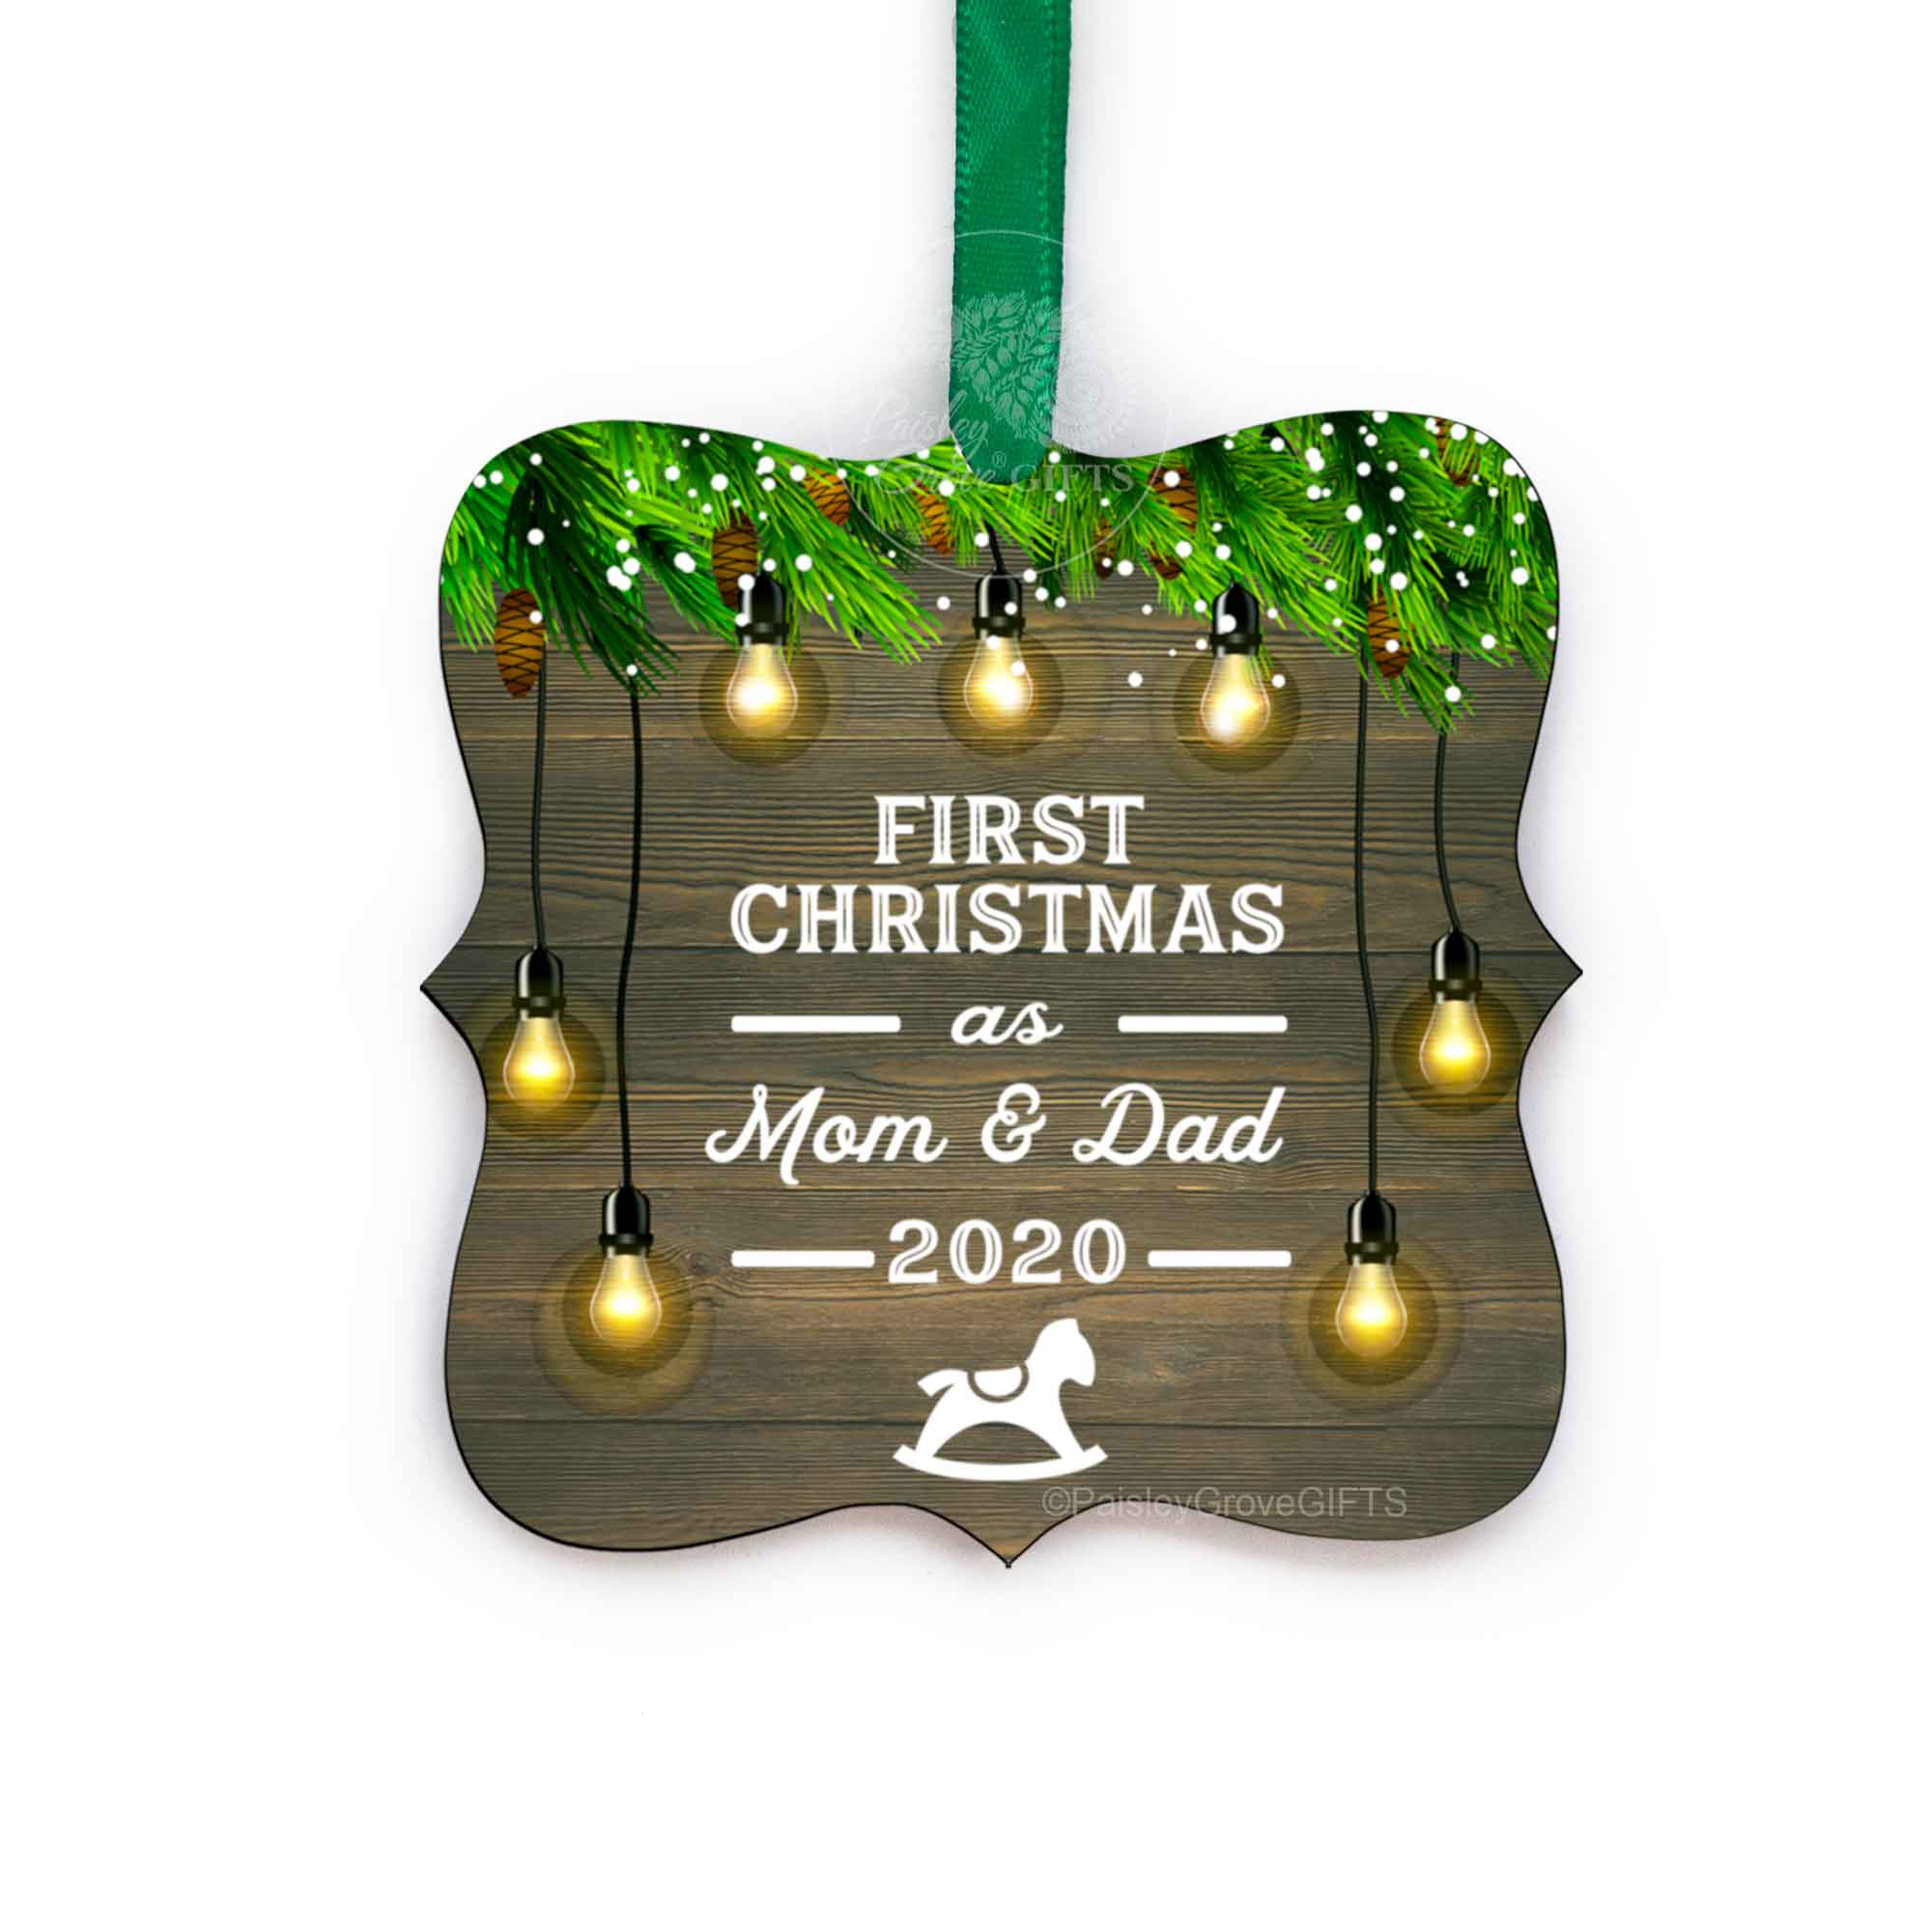 CopyrightPaisleyGroveGIFTS S510e First Christmas as Mom and Dad 2020 Ornament with ribbon in rustic traditional design